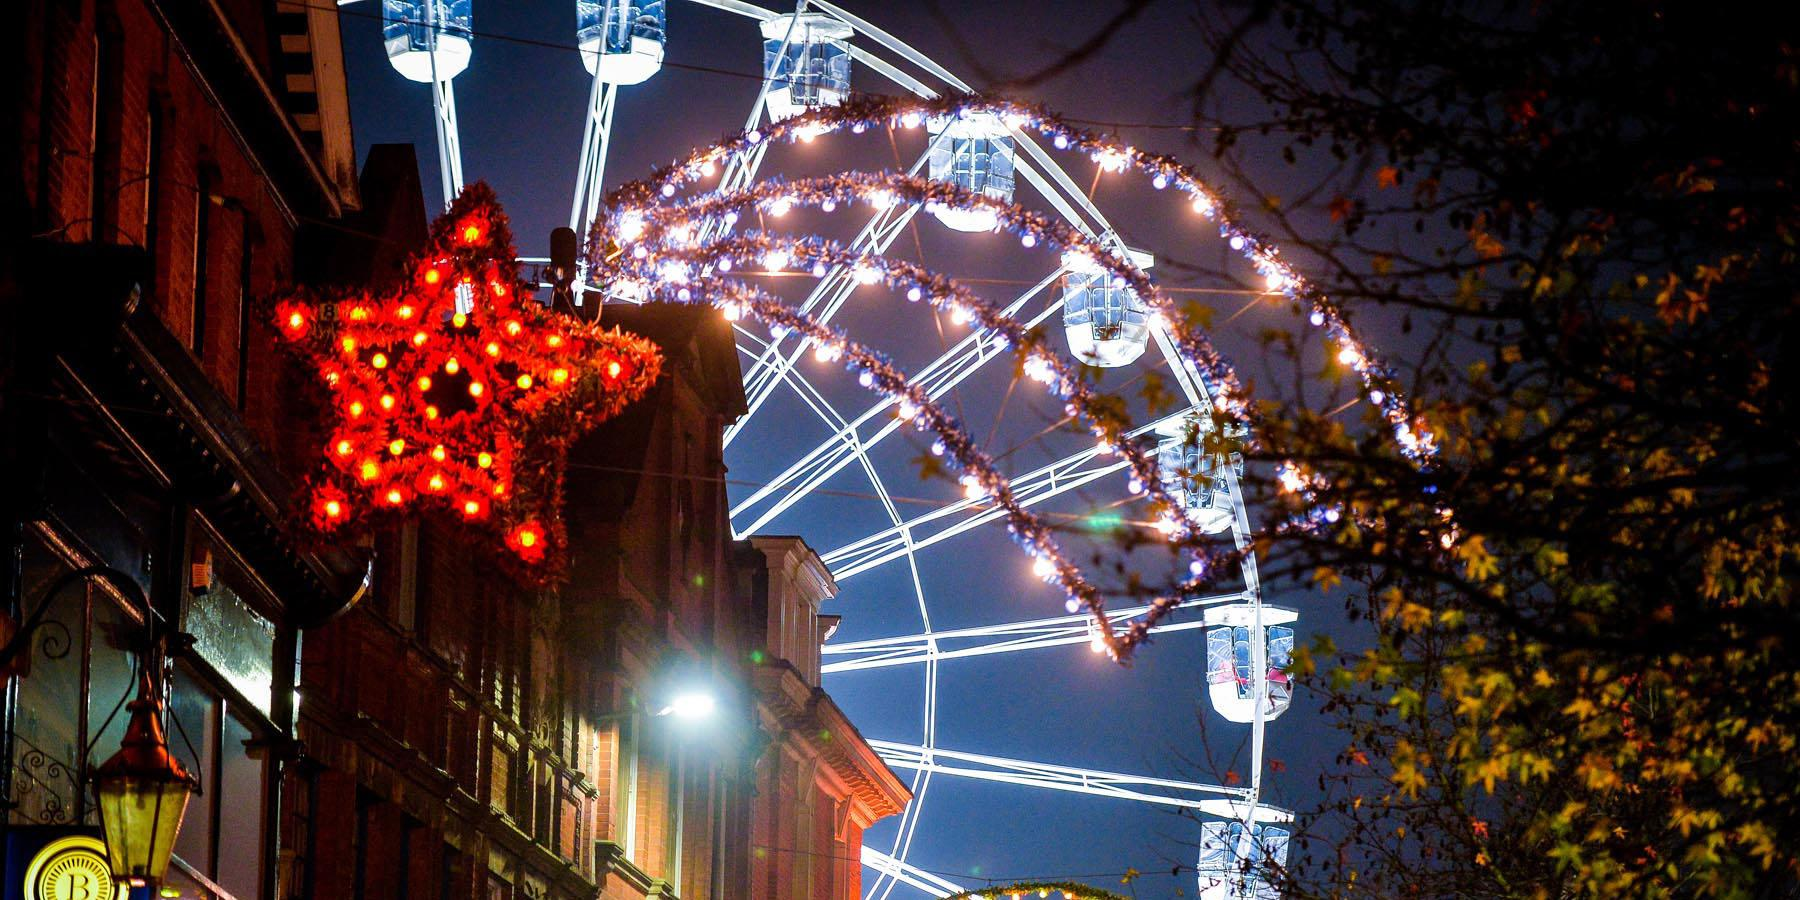 Prepare for the festive season in Leicester with your guide on how the city is welcoming the most wonderful time of the year!